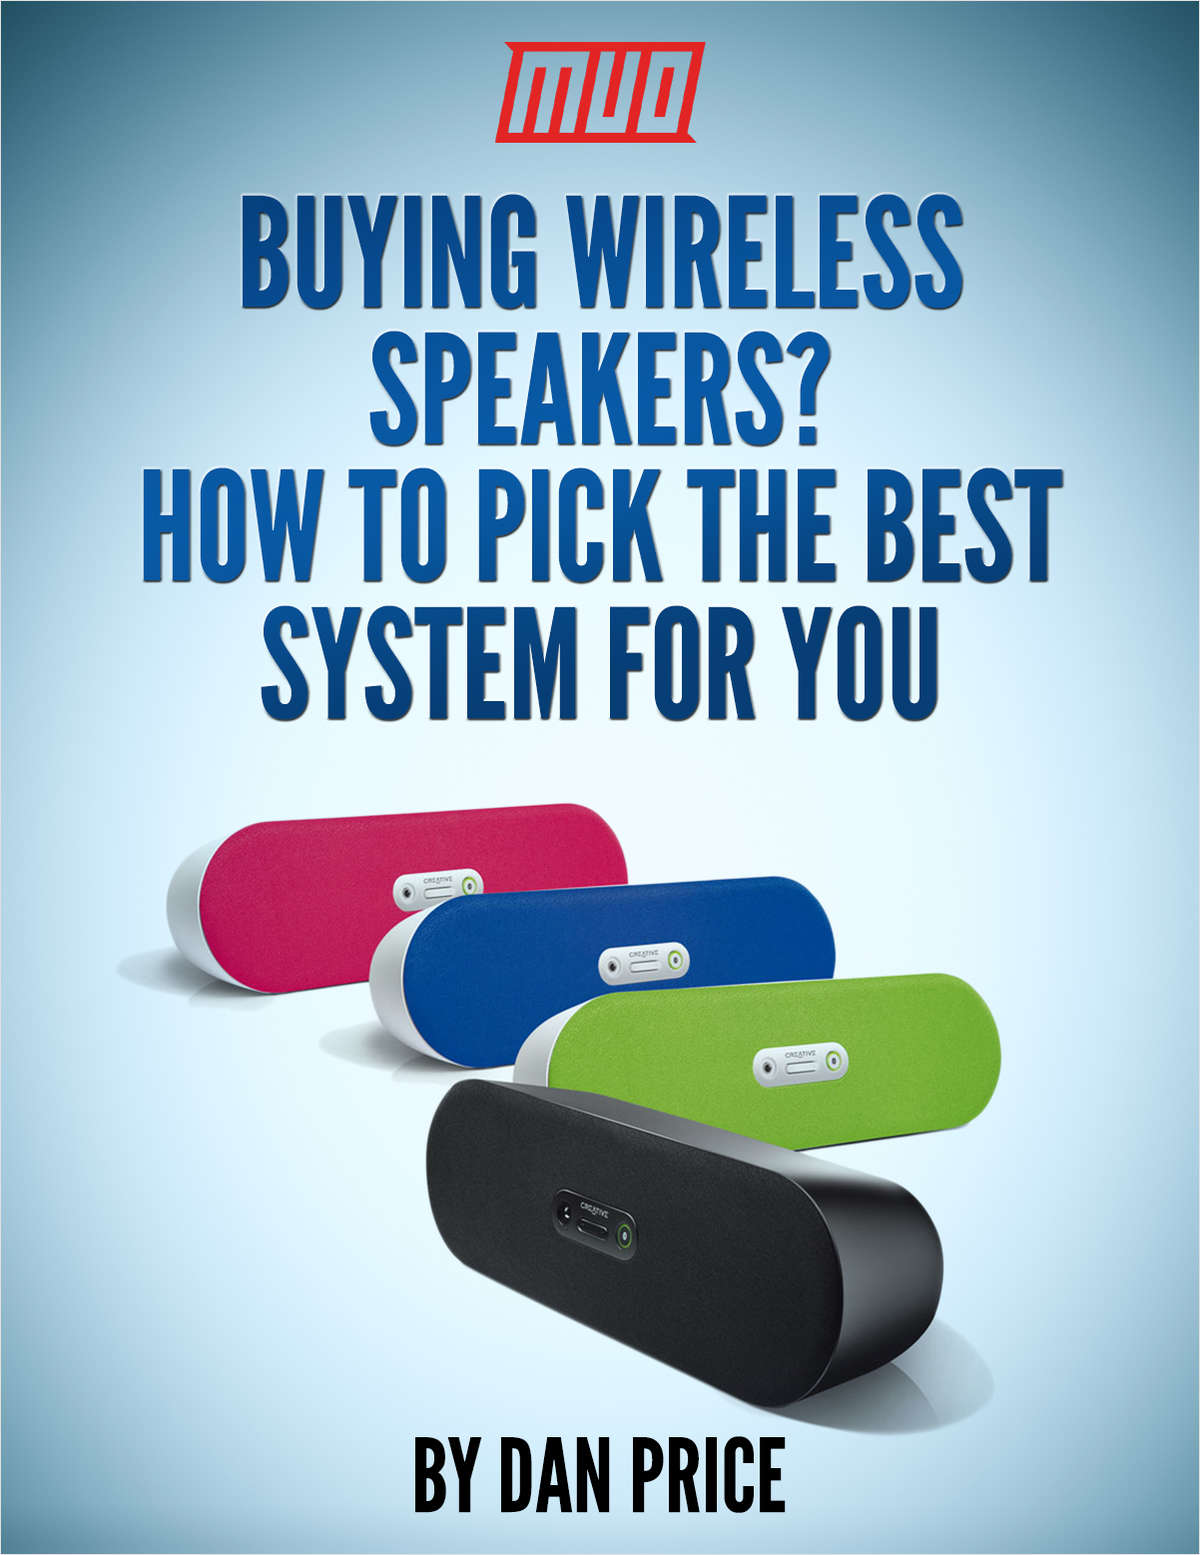 Buying Wireless Speakers? How to Pick the Best System for You